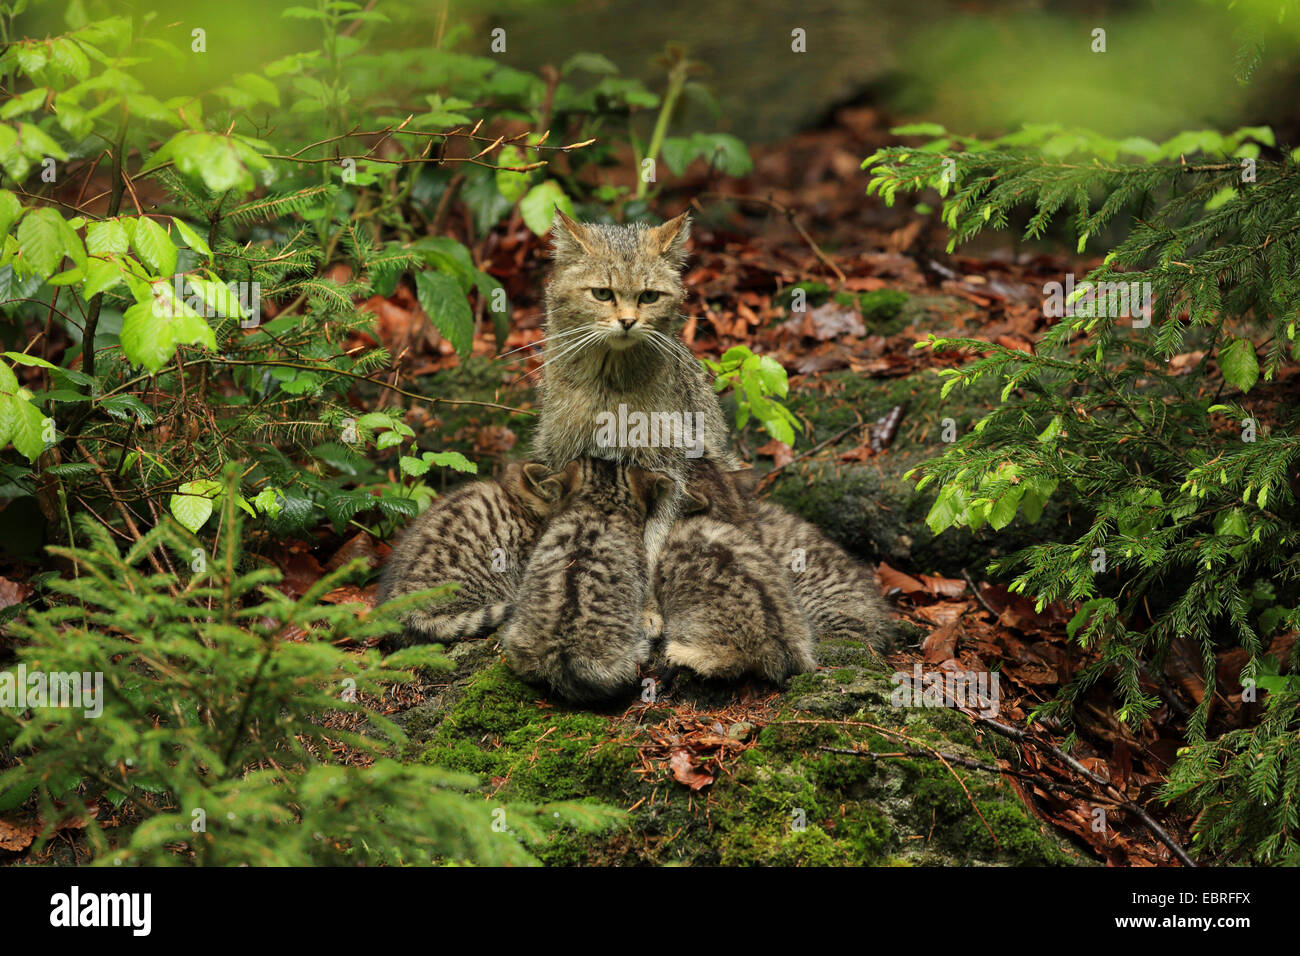 European wildcat, forest wildcat (Felis silvestris silvestris), cat sitting on the forest ground and suckling its - Stock Image